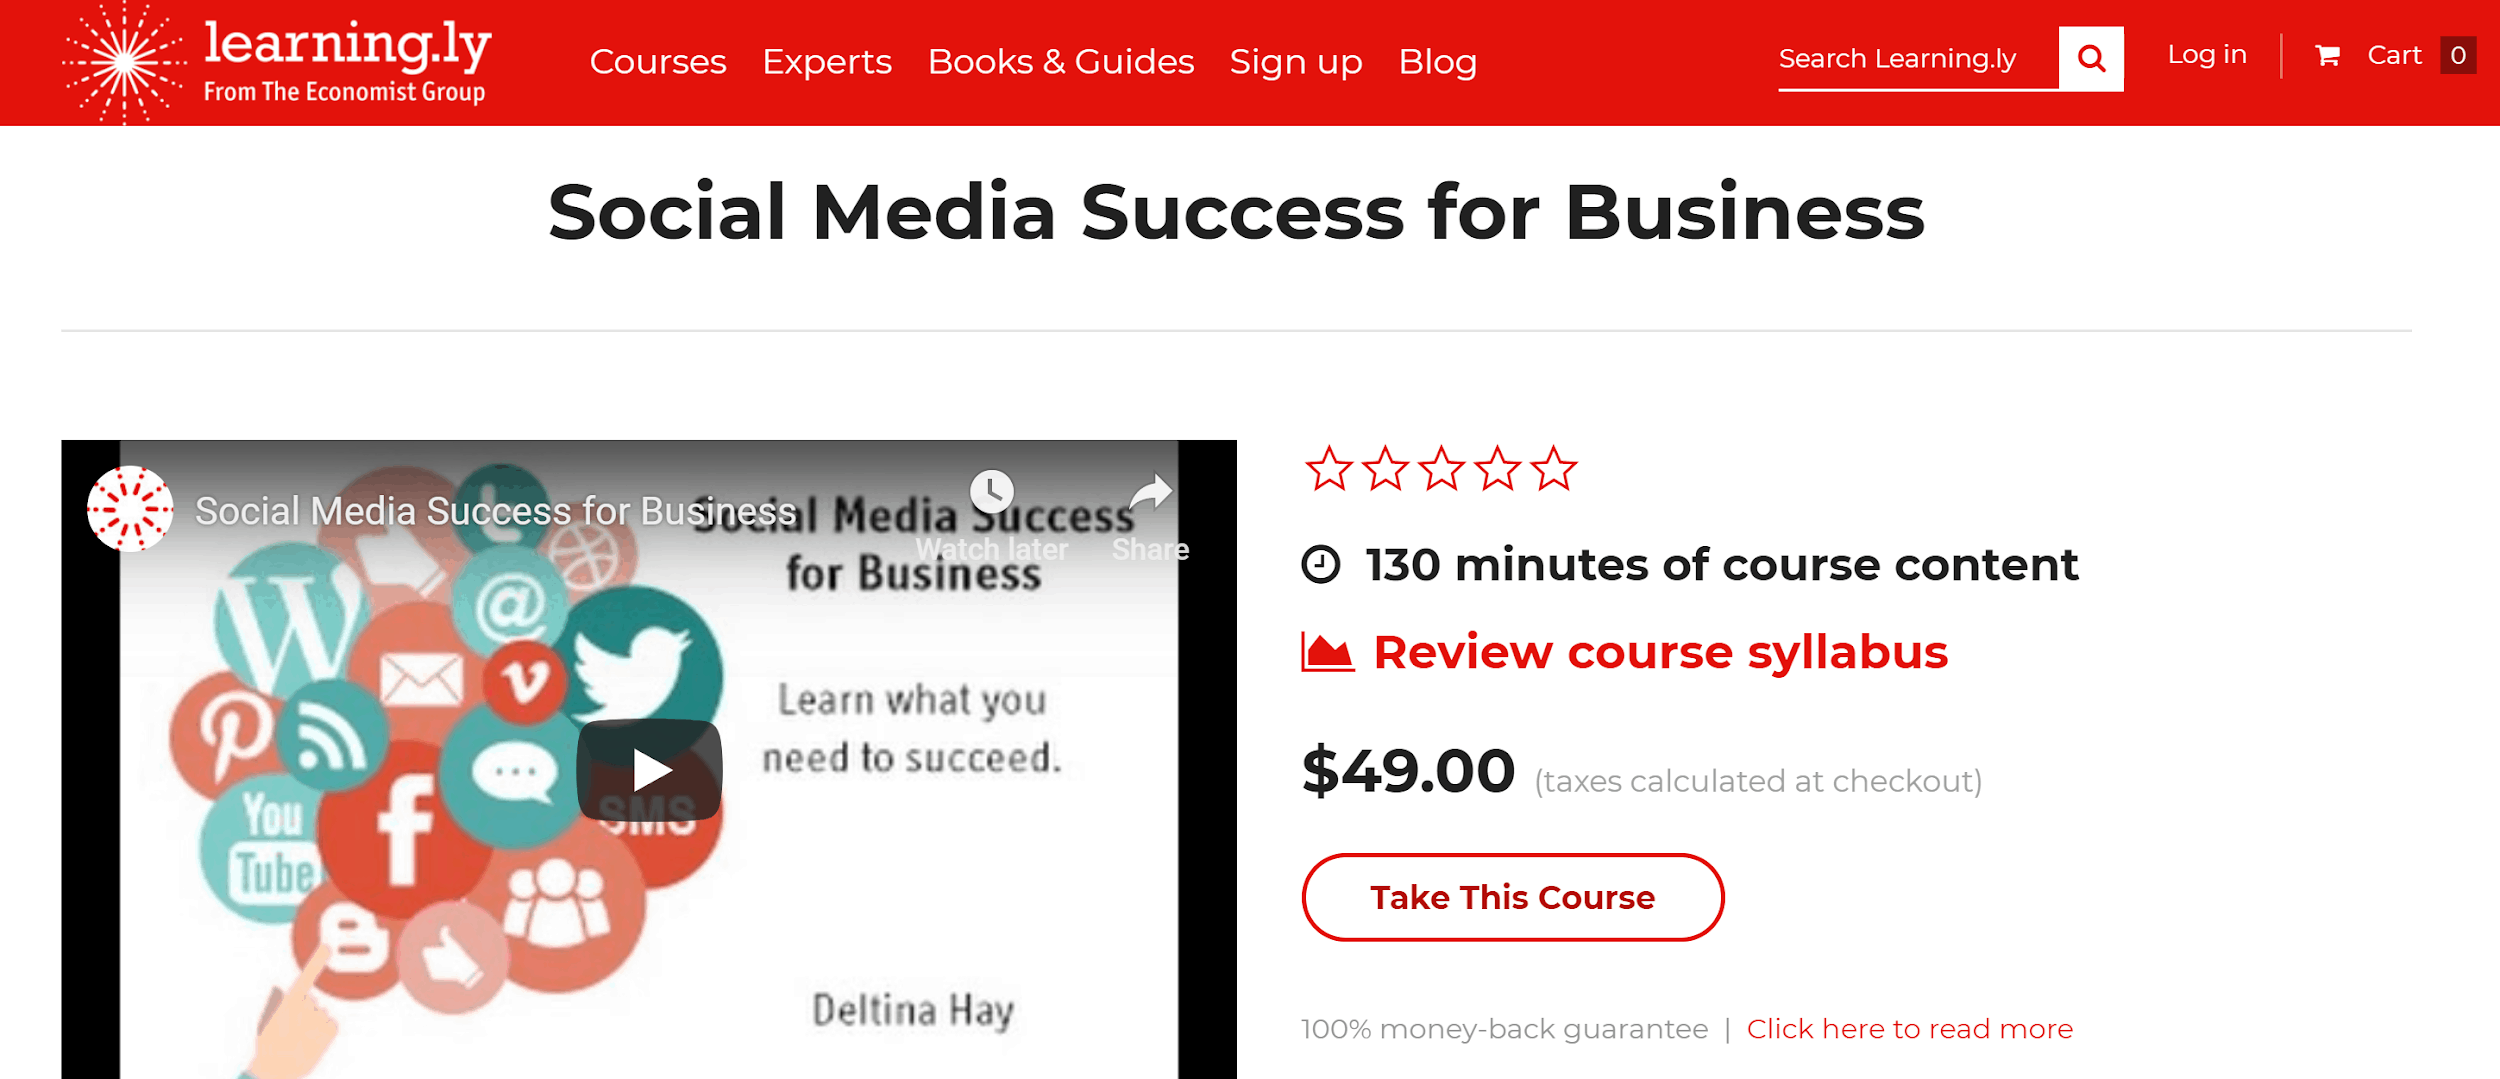 6 Best Online Social Media Marketing Courses - Avoid the Amateurs-image6